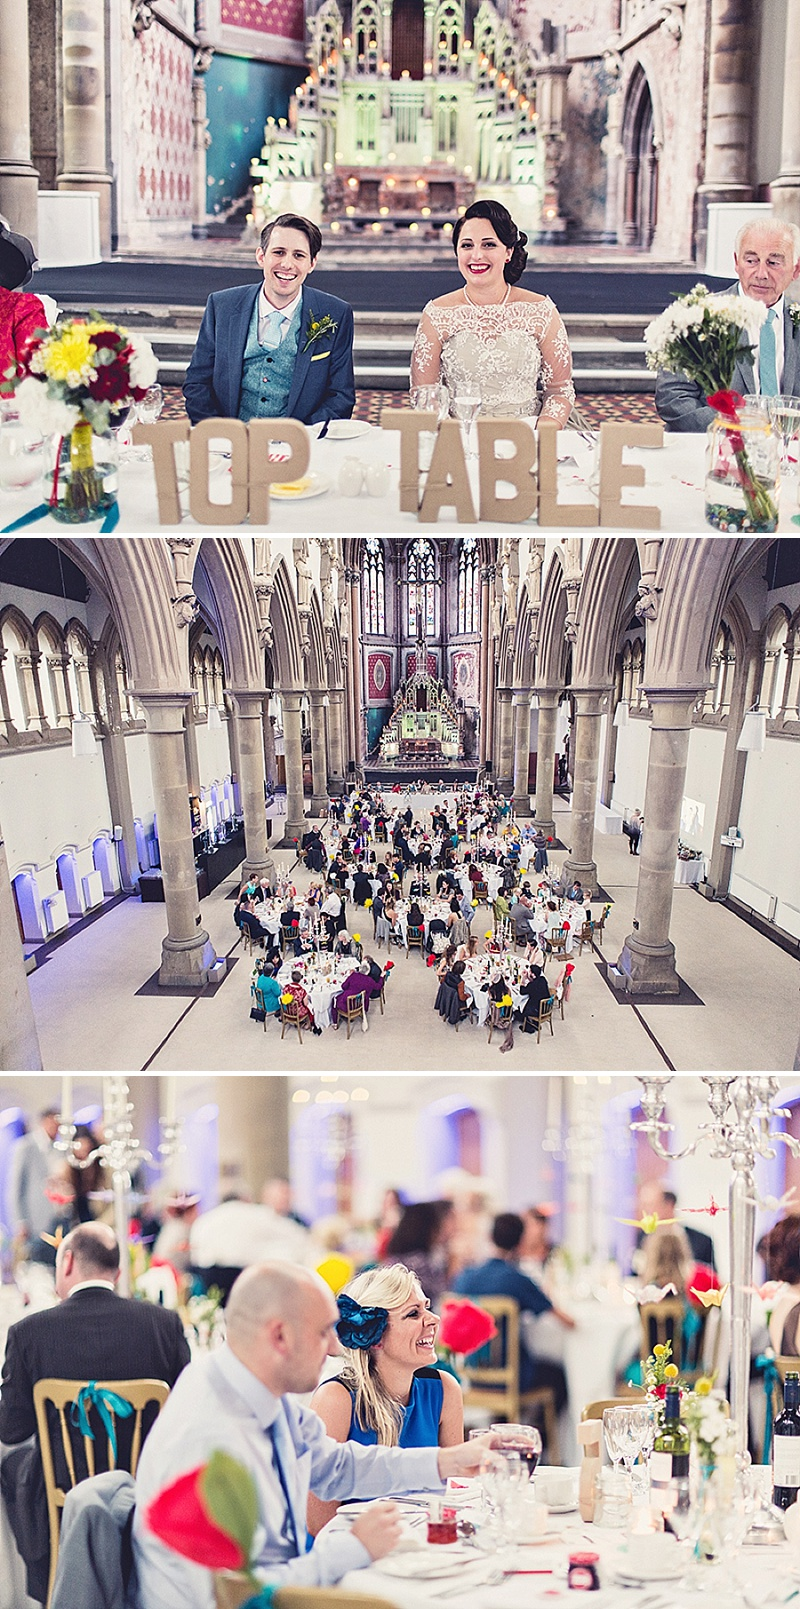 DIY Wedding At The Monastery In Manchester With Bride In Bespoke Gown And Bridesmaids In Green Dresses From Dig For Victory With An Unusual Home Made Table Plan, Origami Cranes And A Flashmob Dance 8